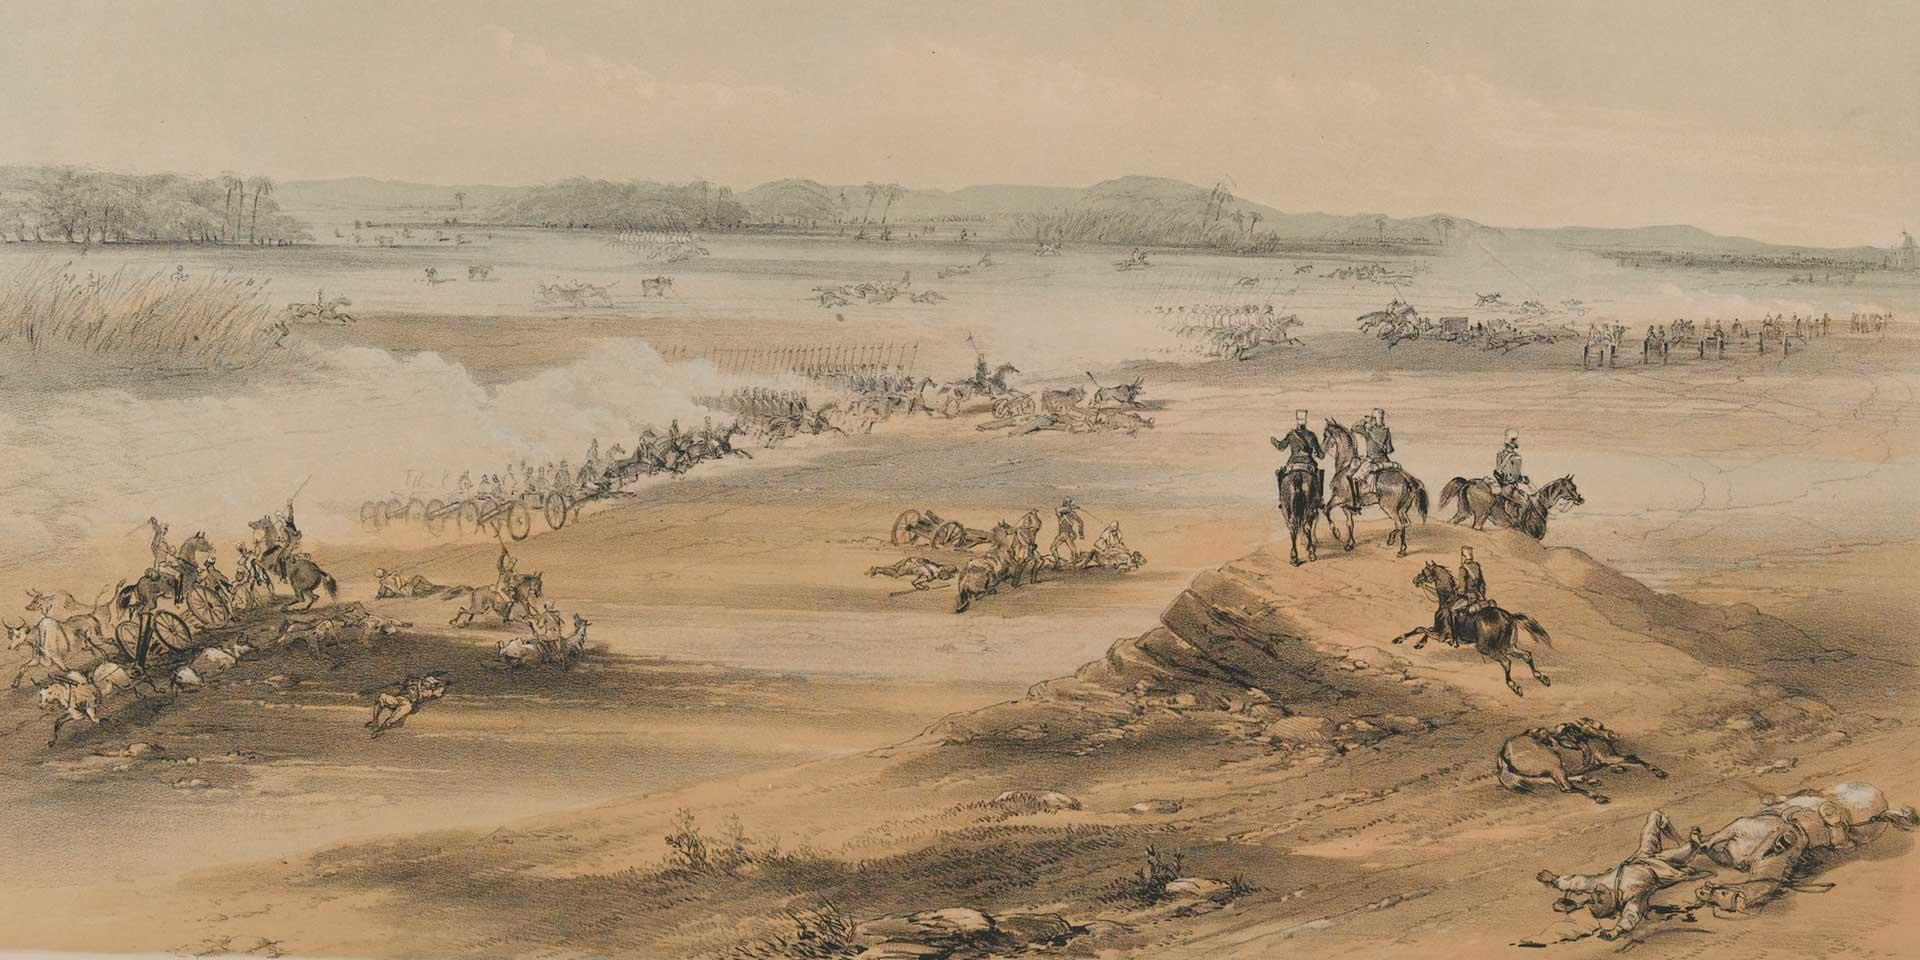 Pursuit of the Gwalior Contingent, by Sir Colin Campbell at Cawnpore, 6 December 1857